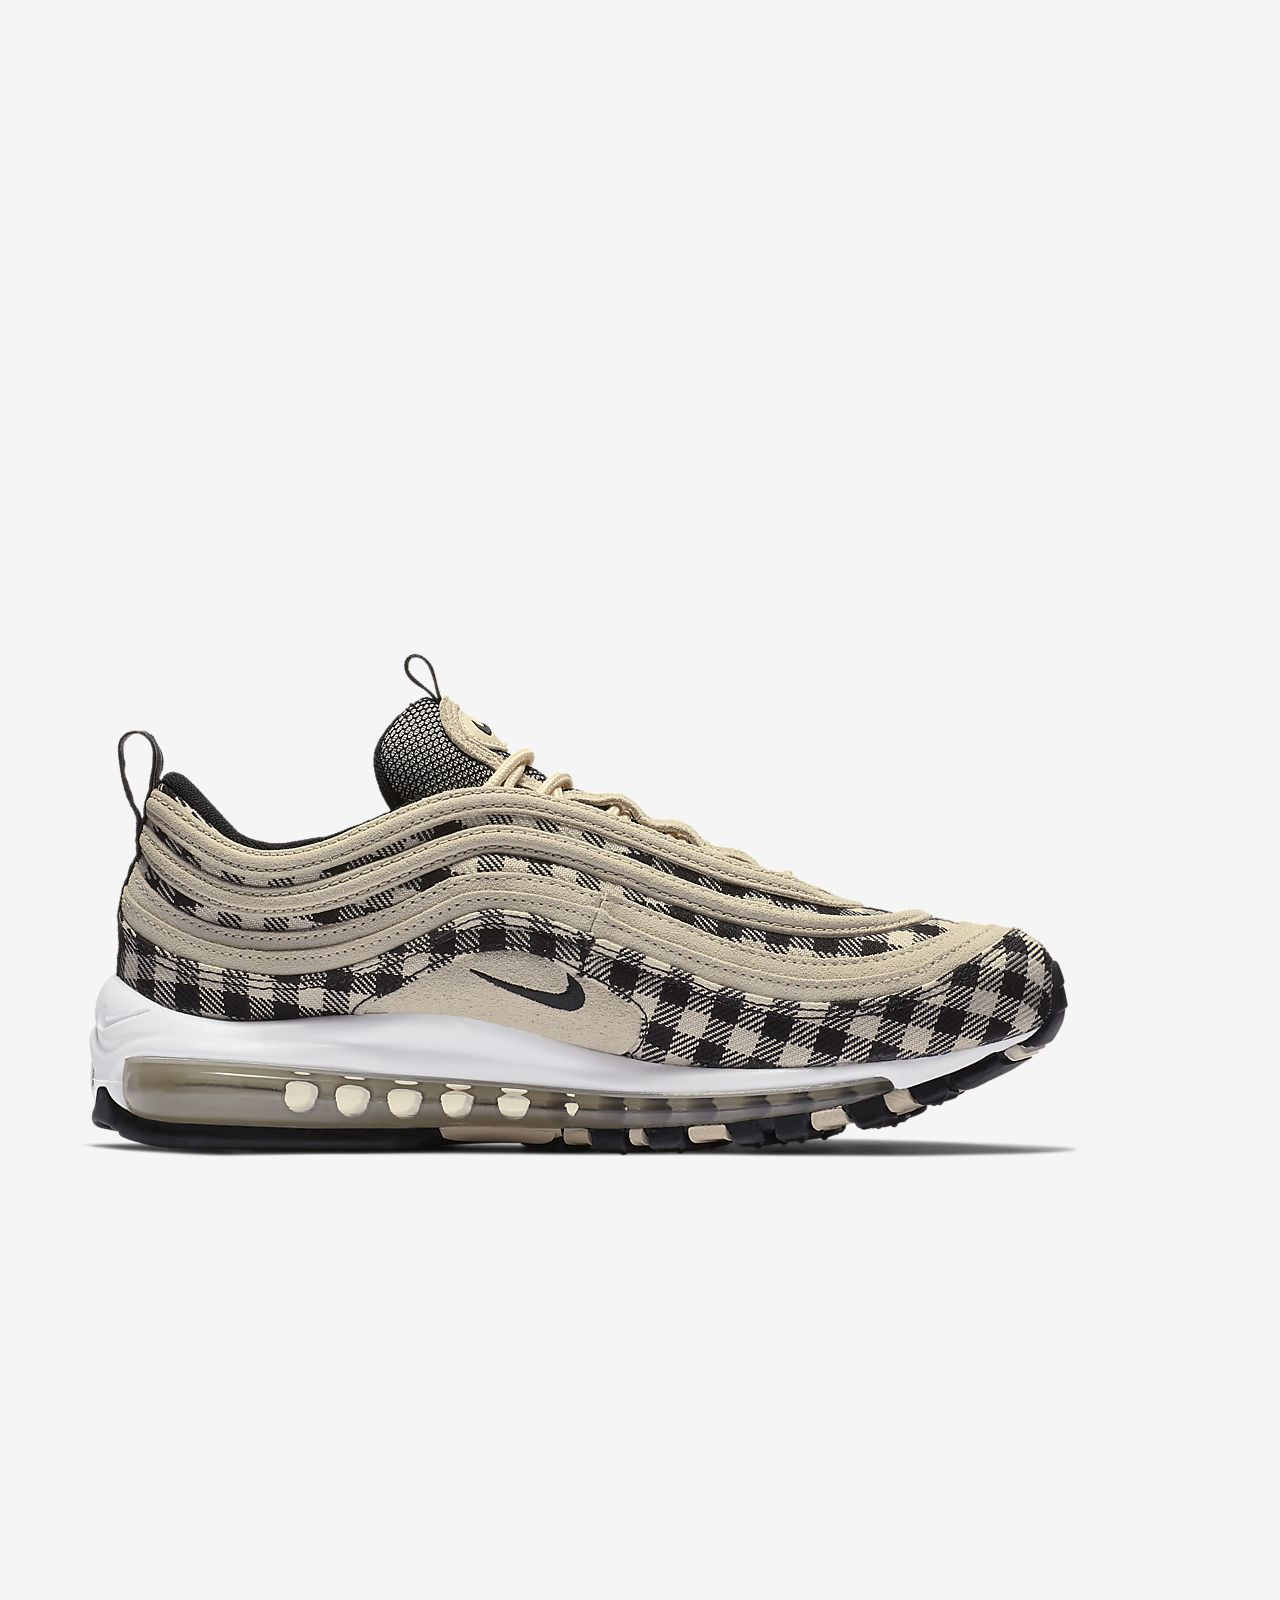 official photos c9fa4 13387 ... Nike Air Max 97 Premium Men s Shoe